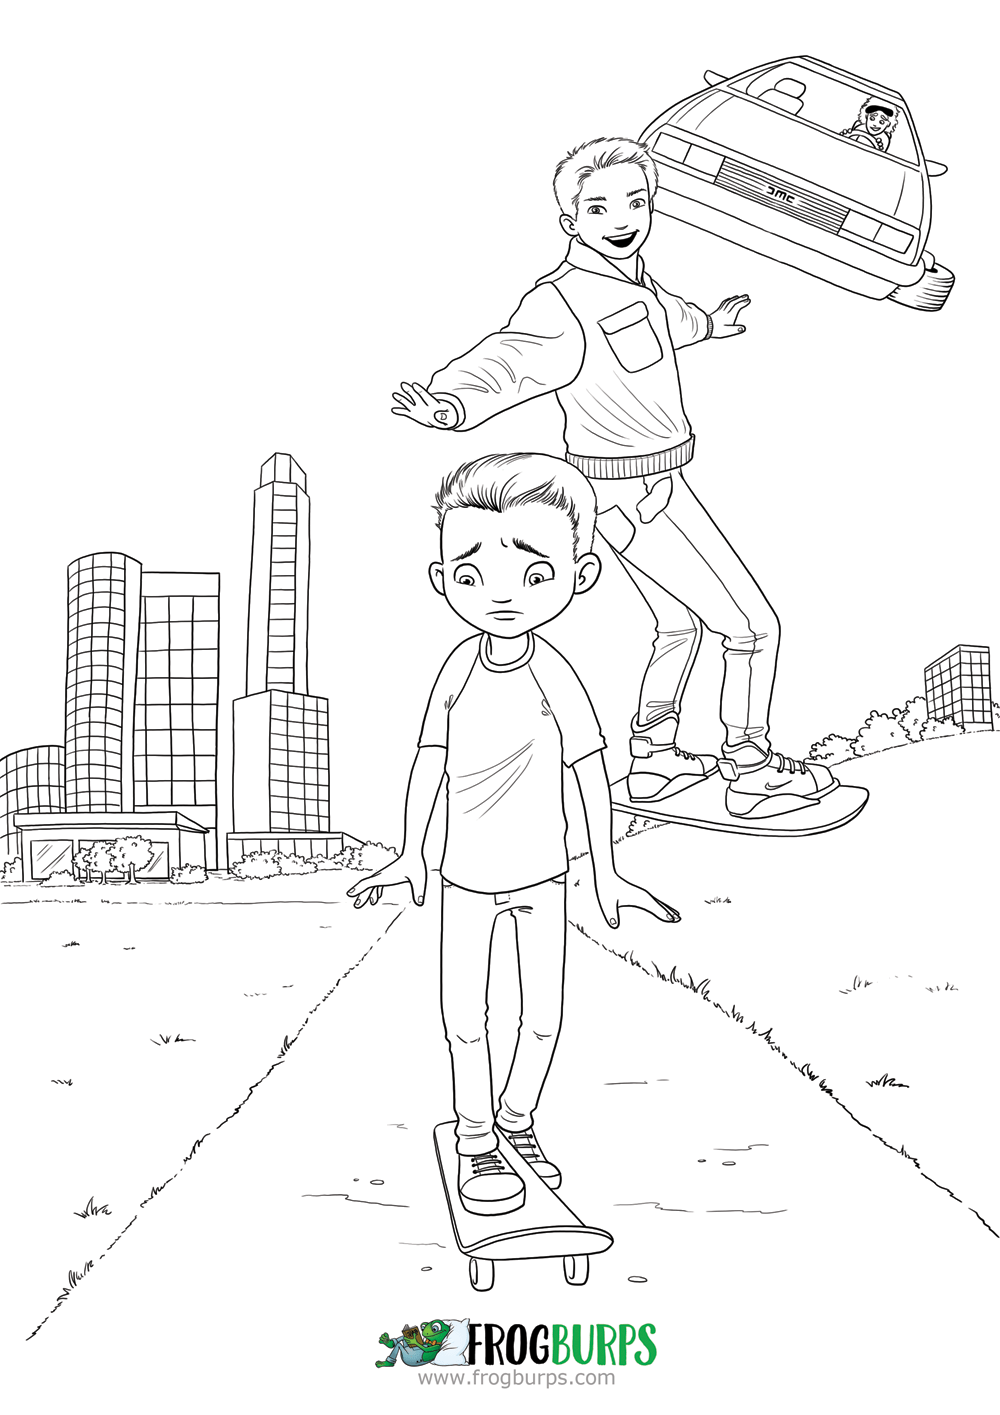 Living In The Future | Coloring Page